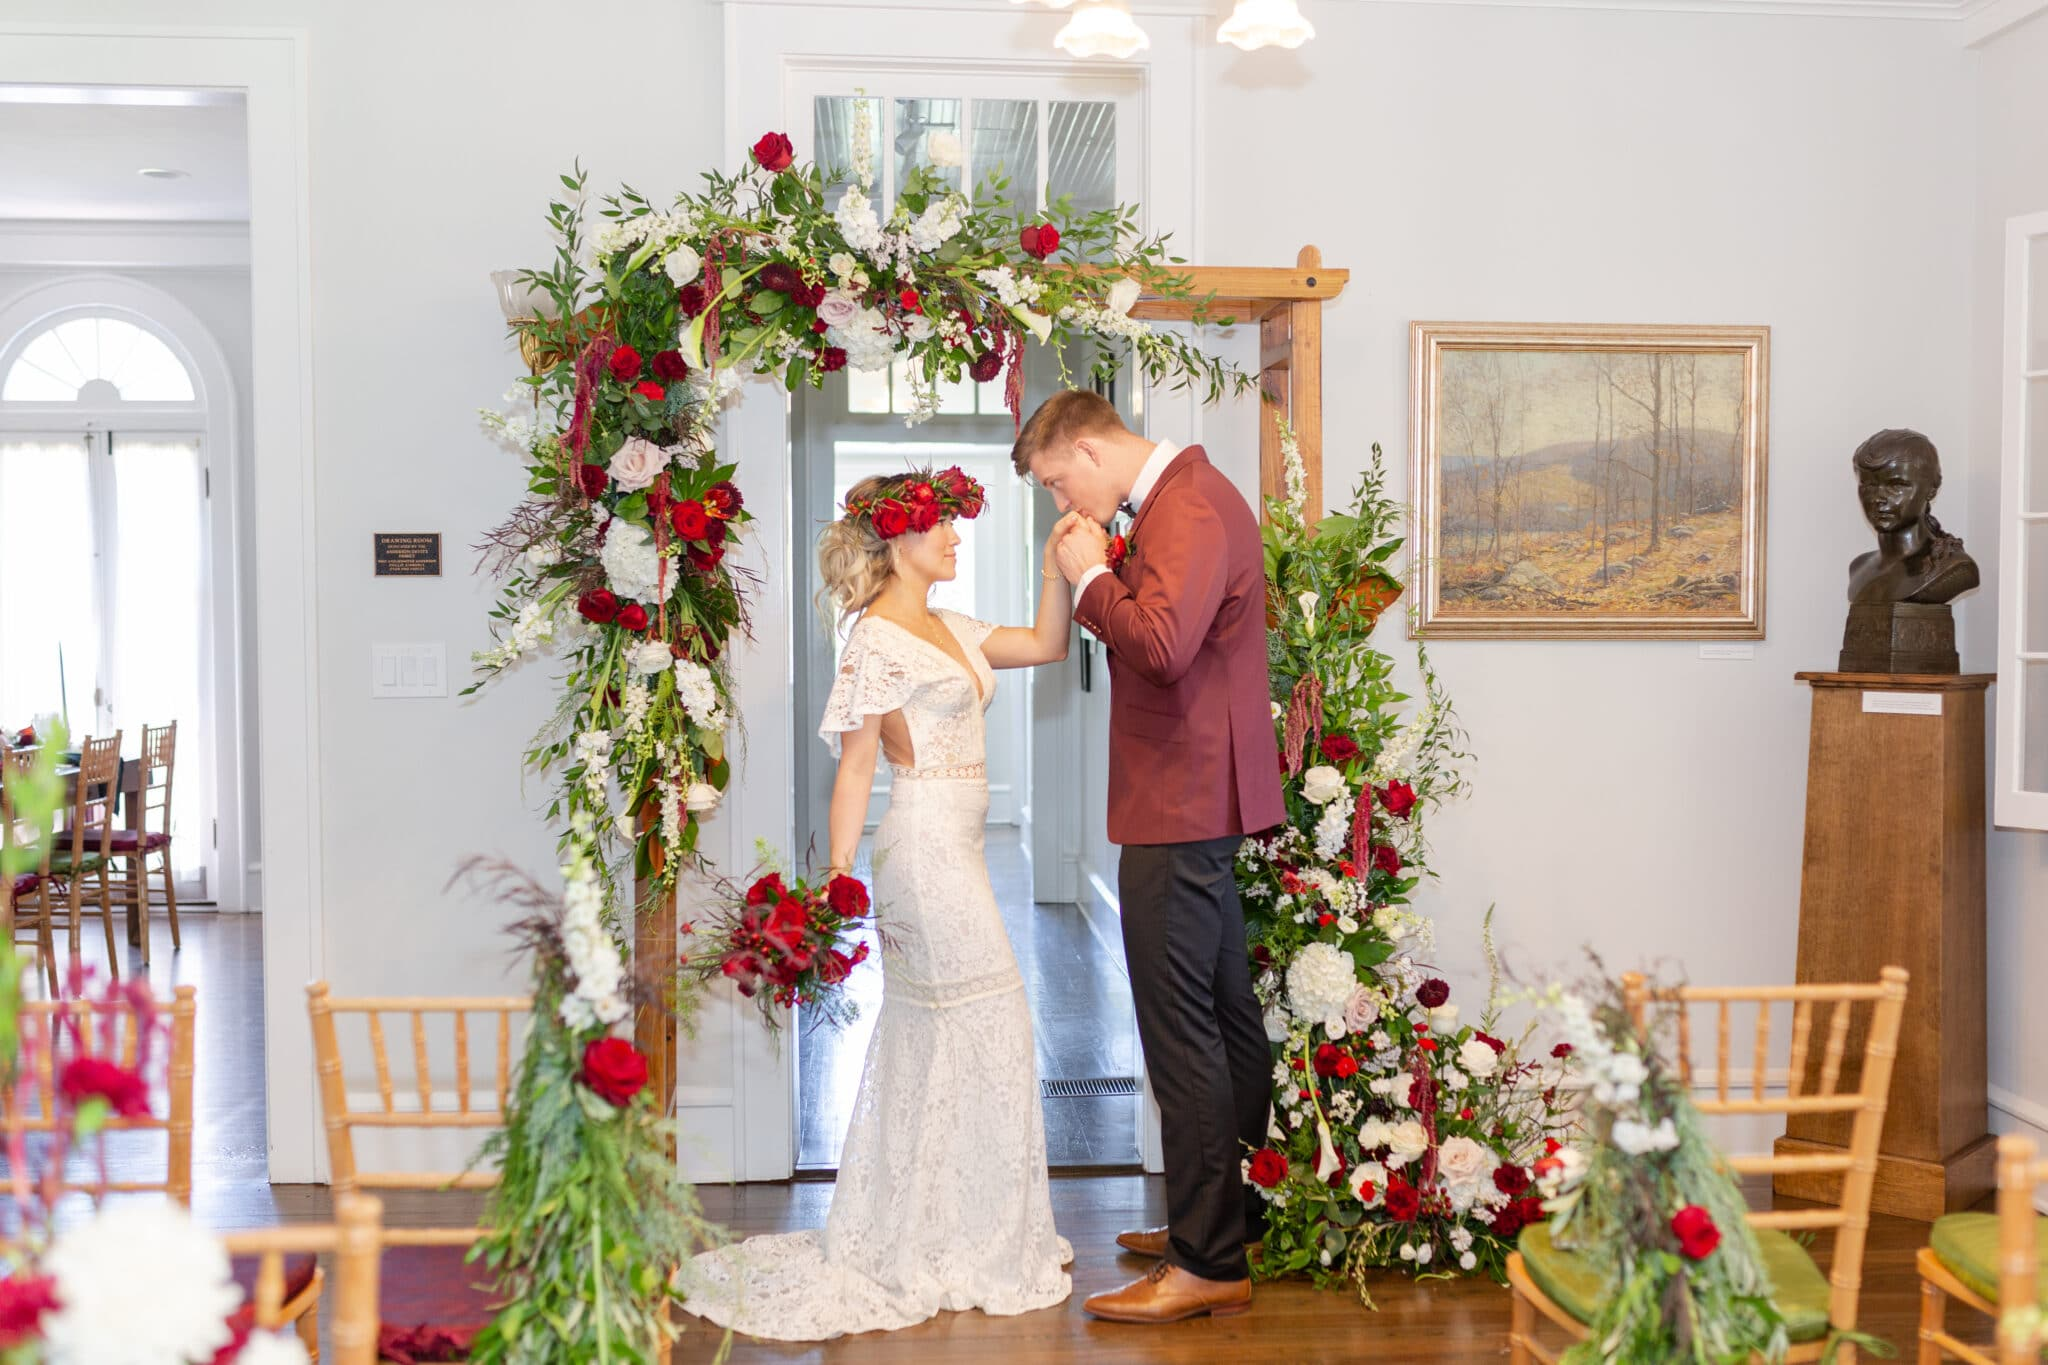 groom kissing his bride on her hand while standing a the alter decorated with red, green and white flowers for the christmas themed wedding inspiration shoot